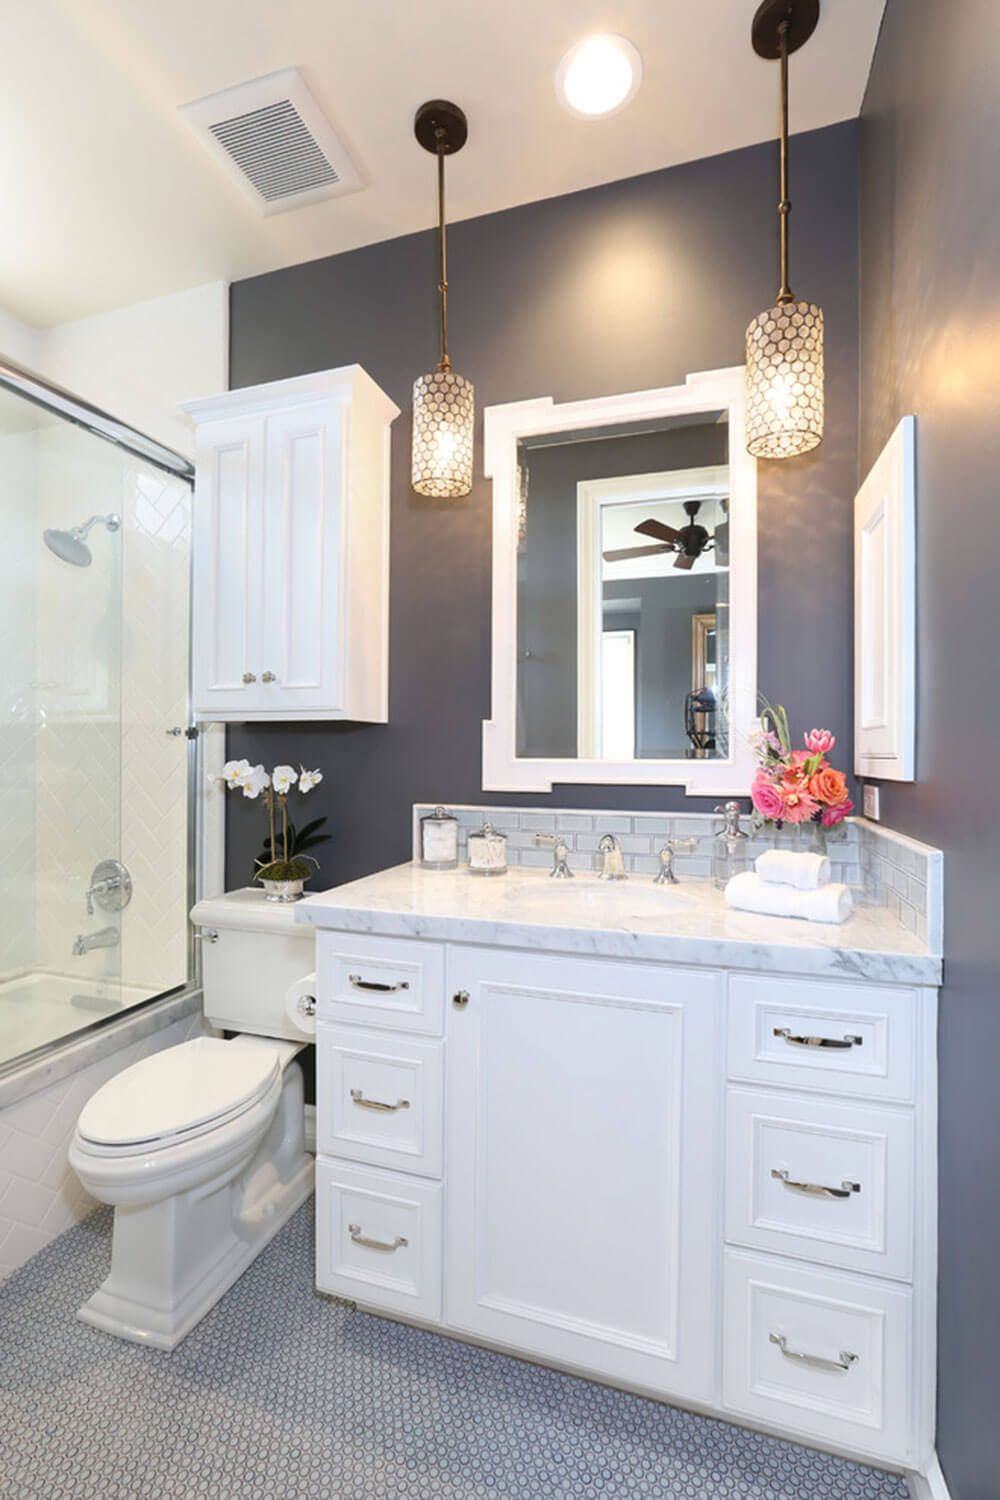 32 Small Bathroom Design Ideas For Every Taste  Dark Grey Dark Interesting Best Small Bathroom Colors 2018